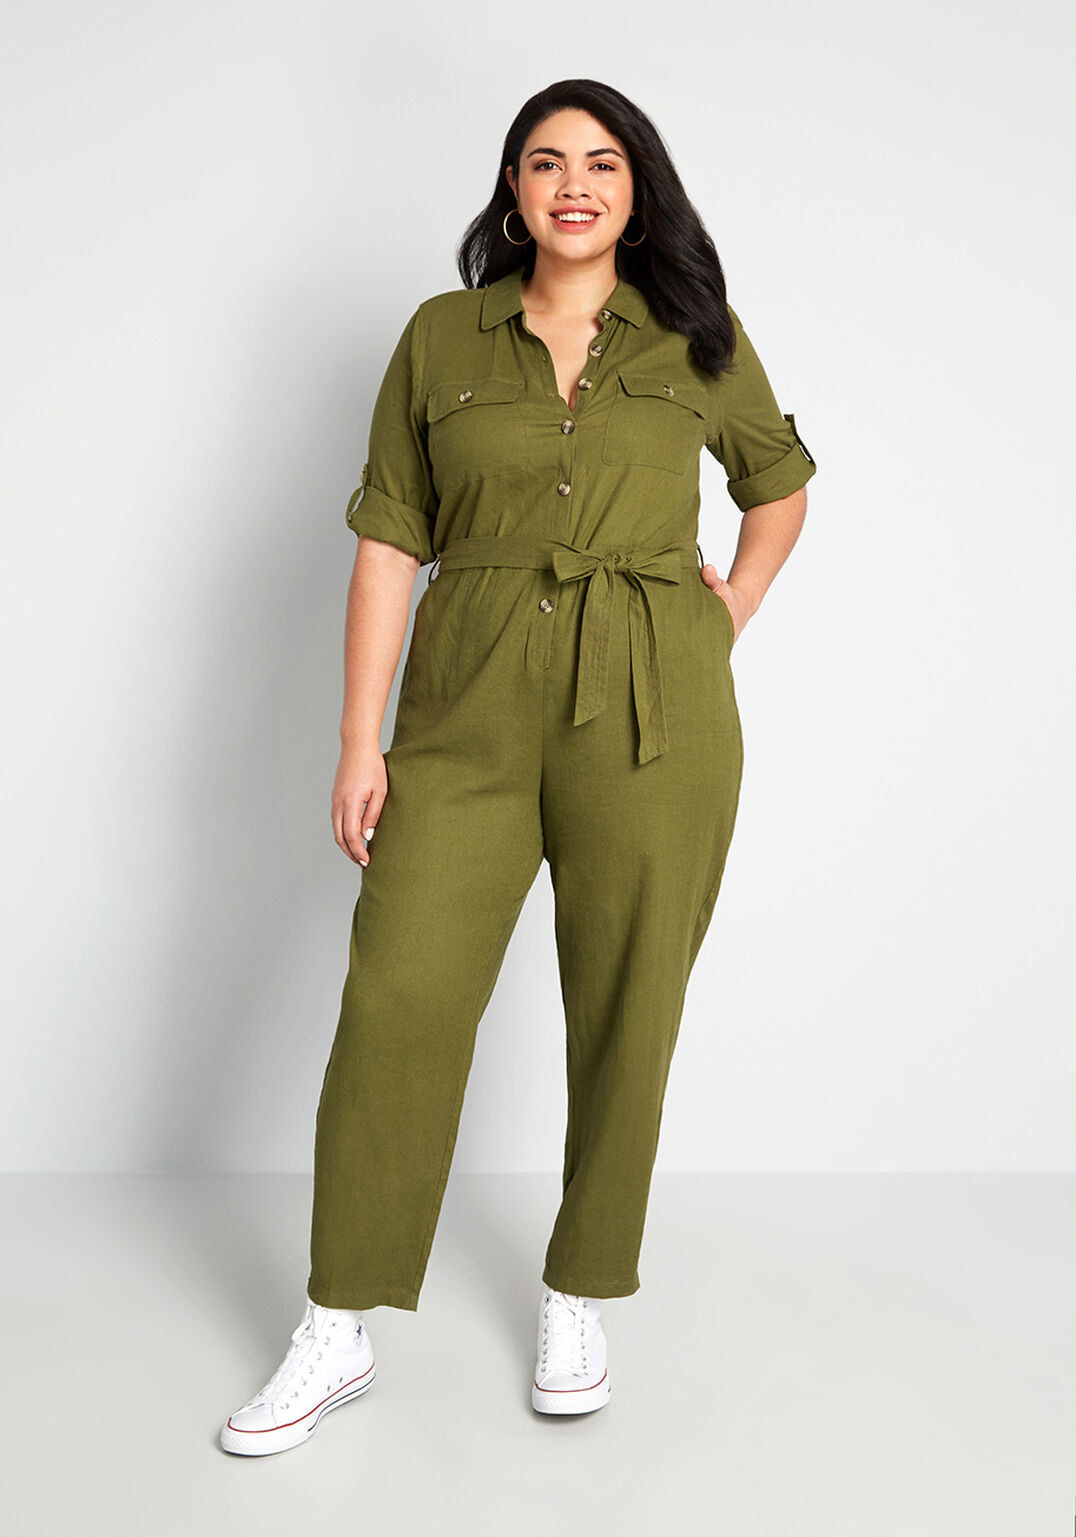 model wearing sleeved olive jumpsuit with tie belt